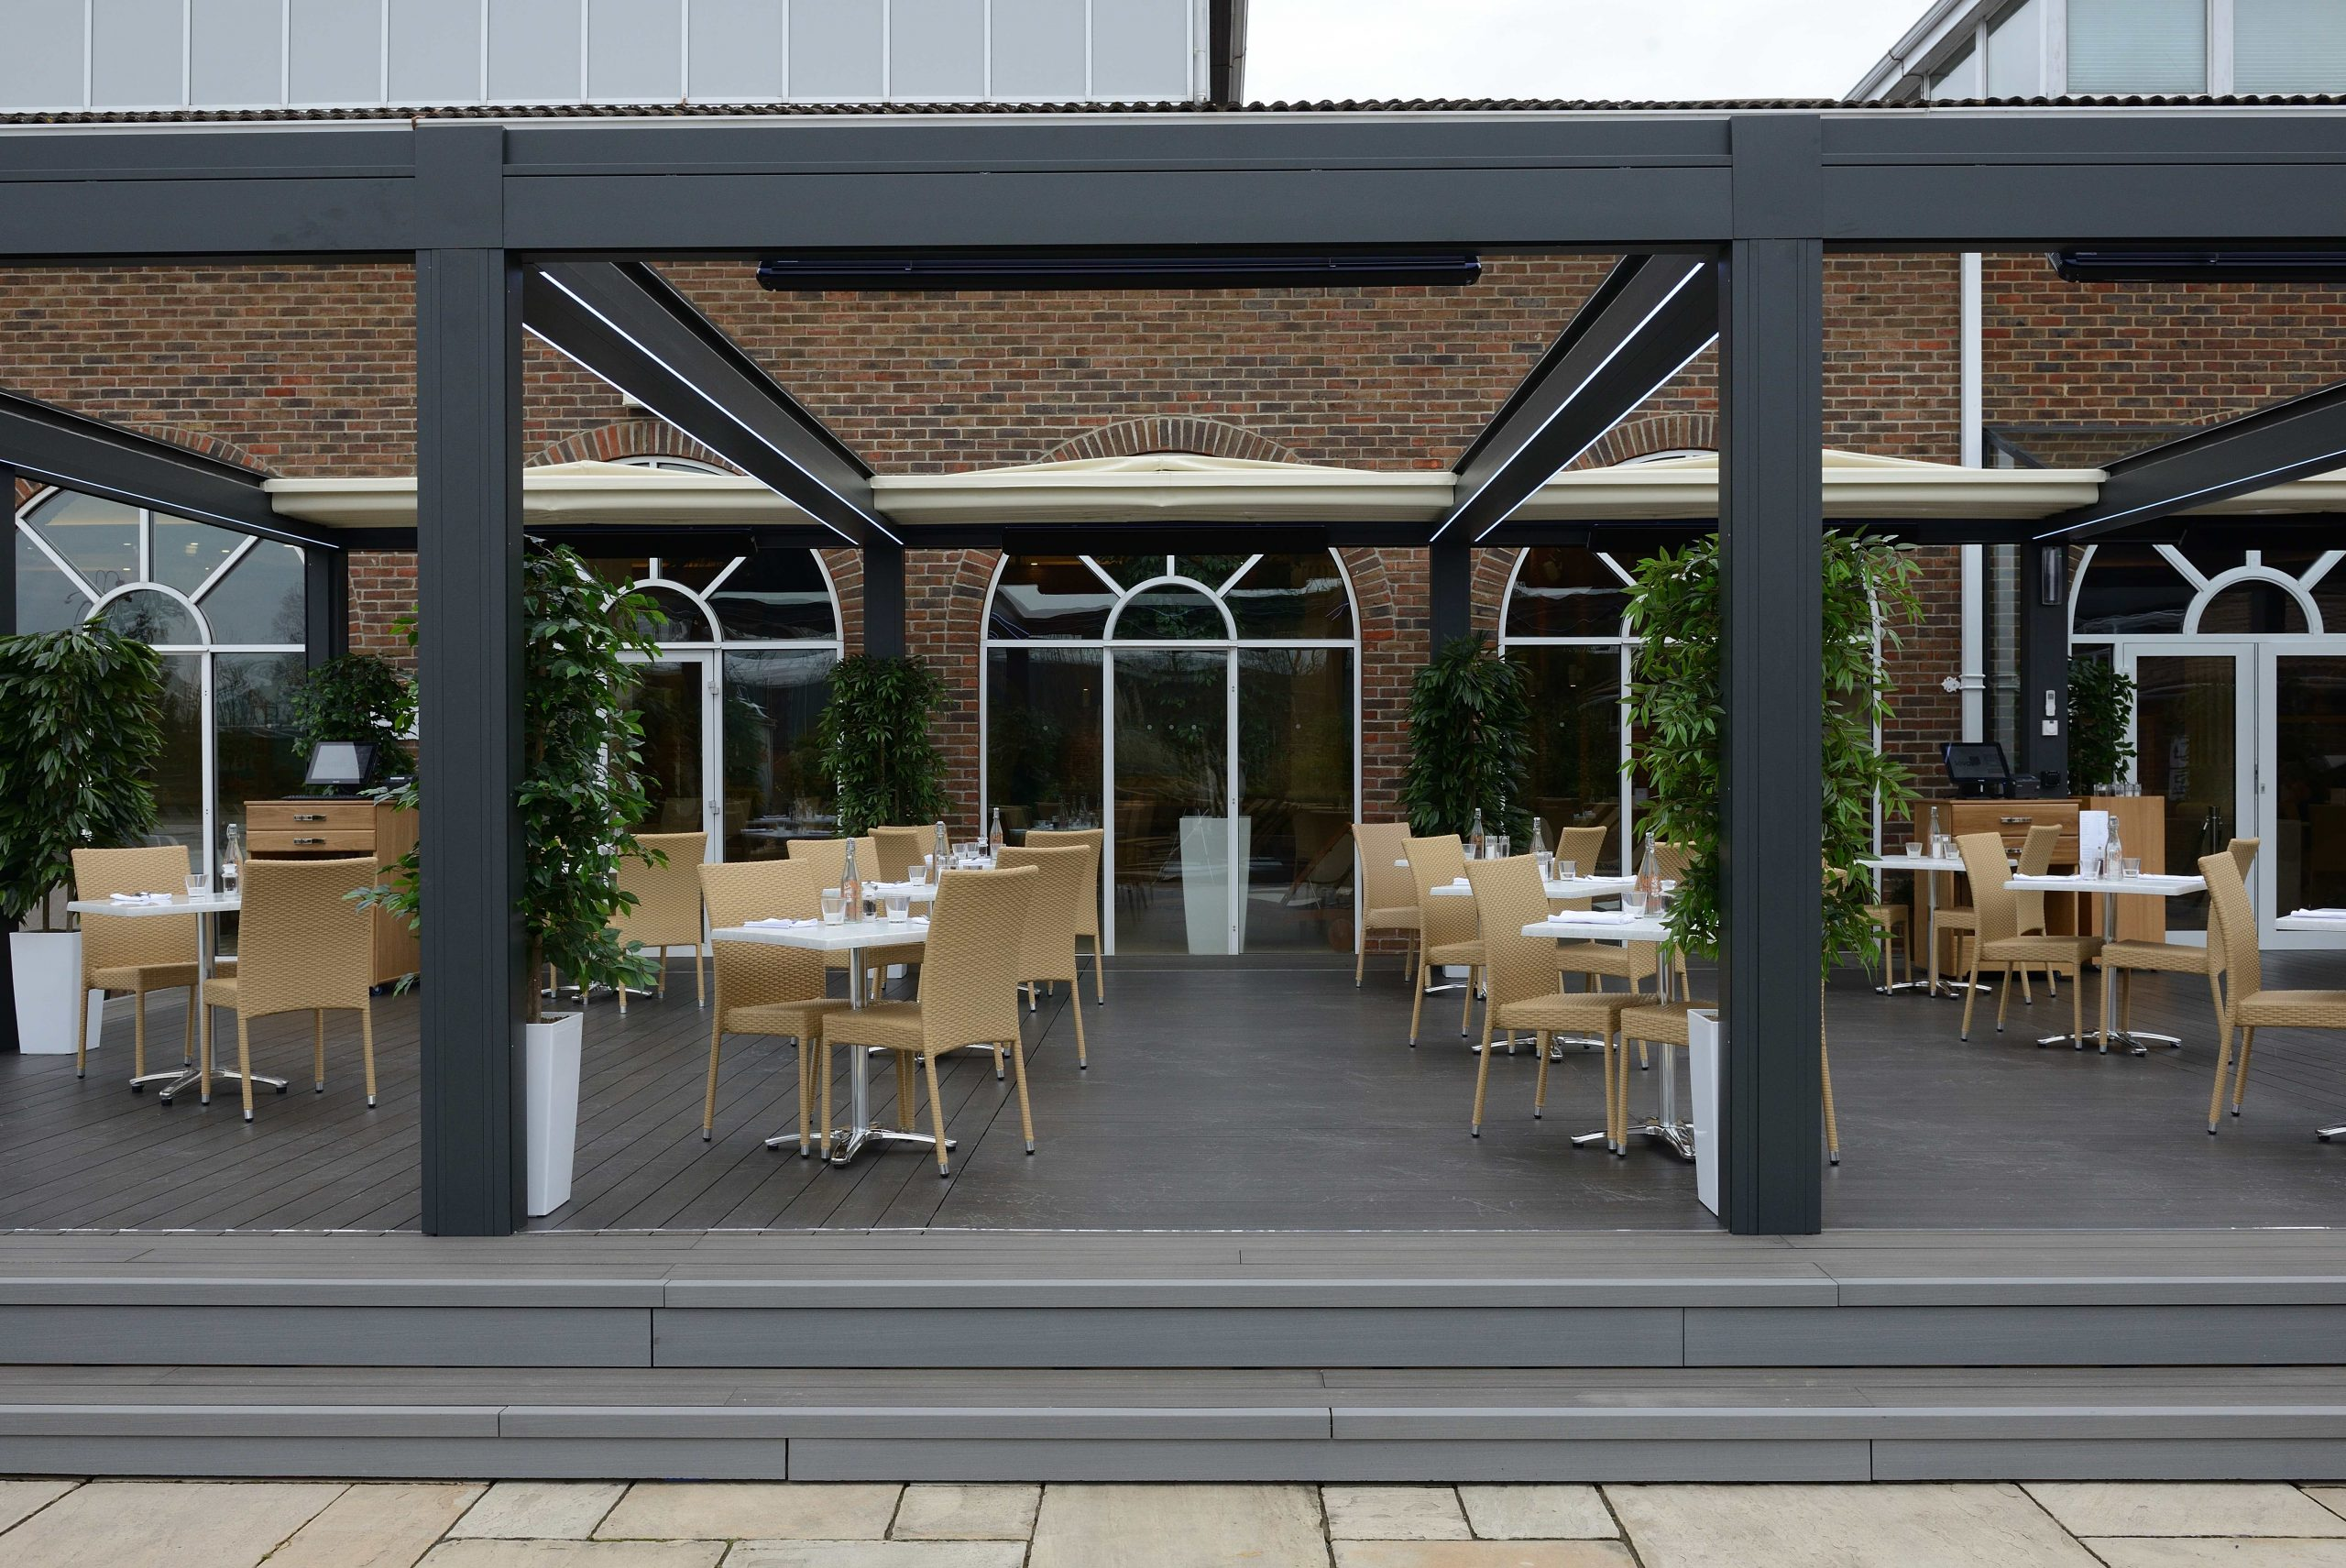 WALLBARN - Composite Decking shoot at ÔNirvana SpaÕ in Wokingham